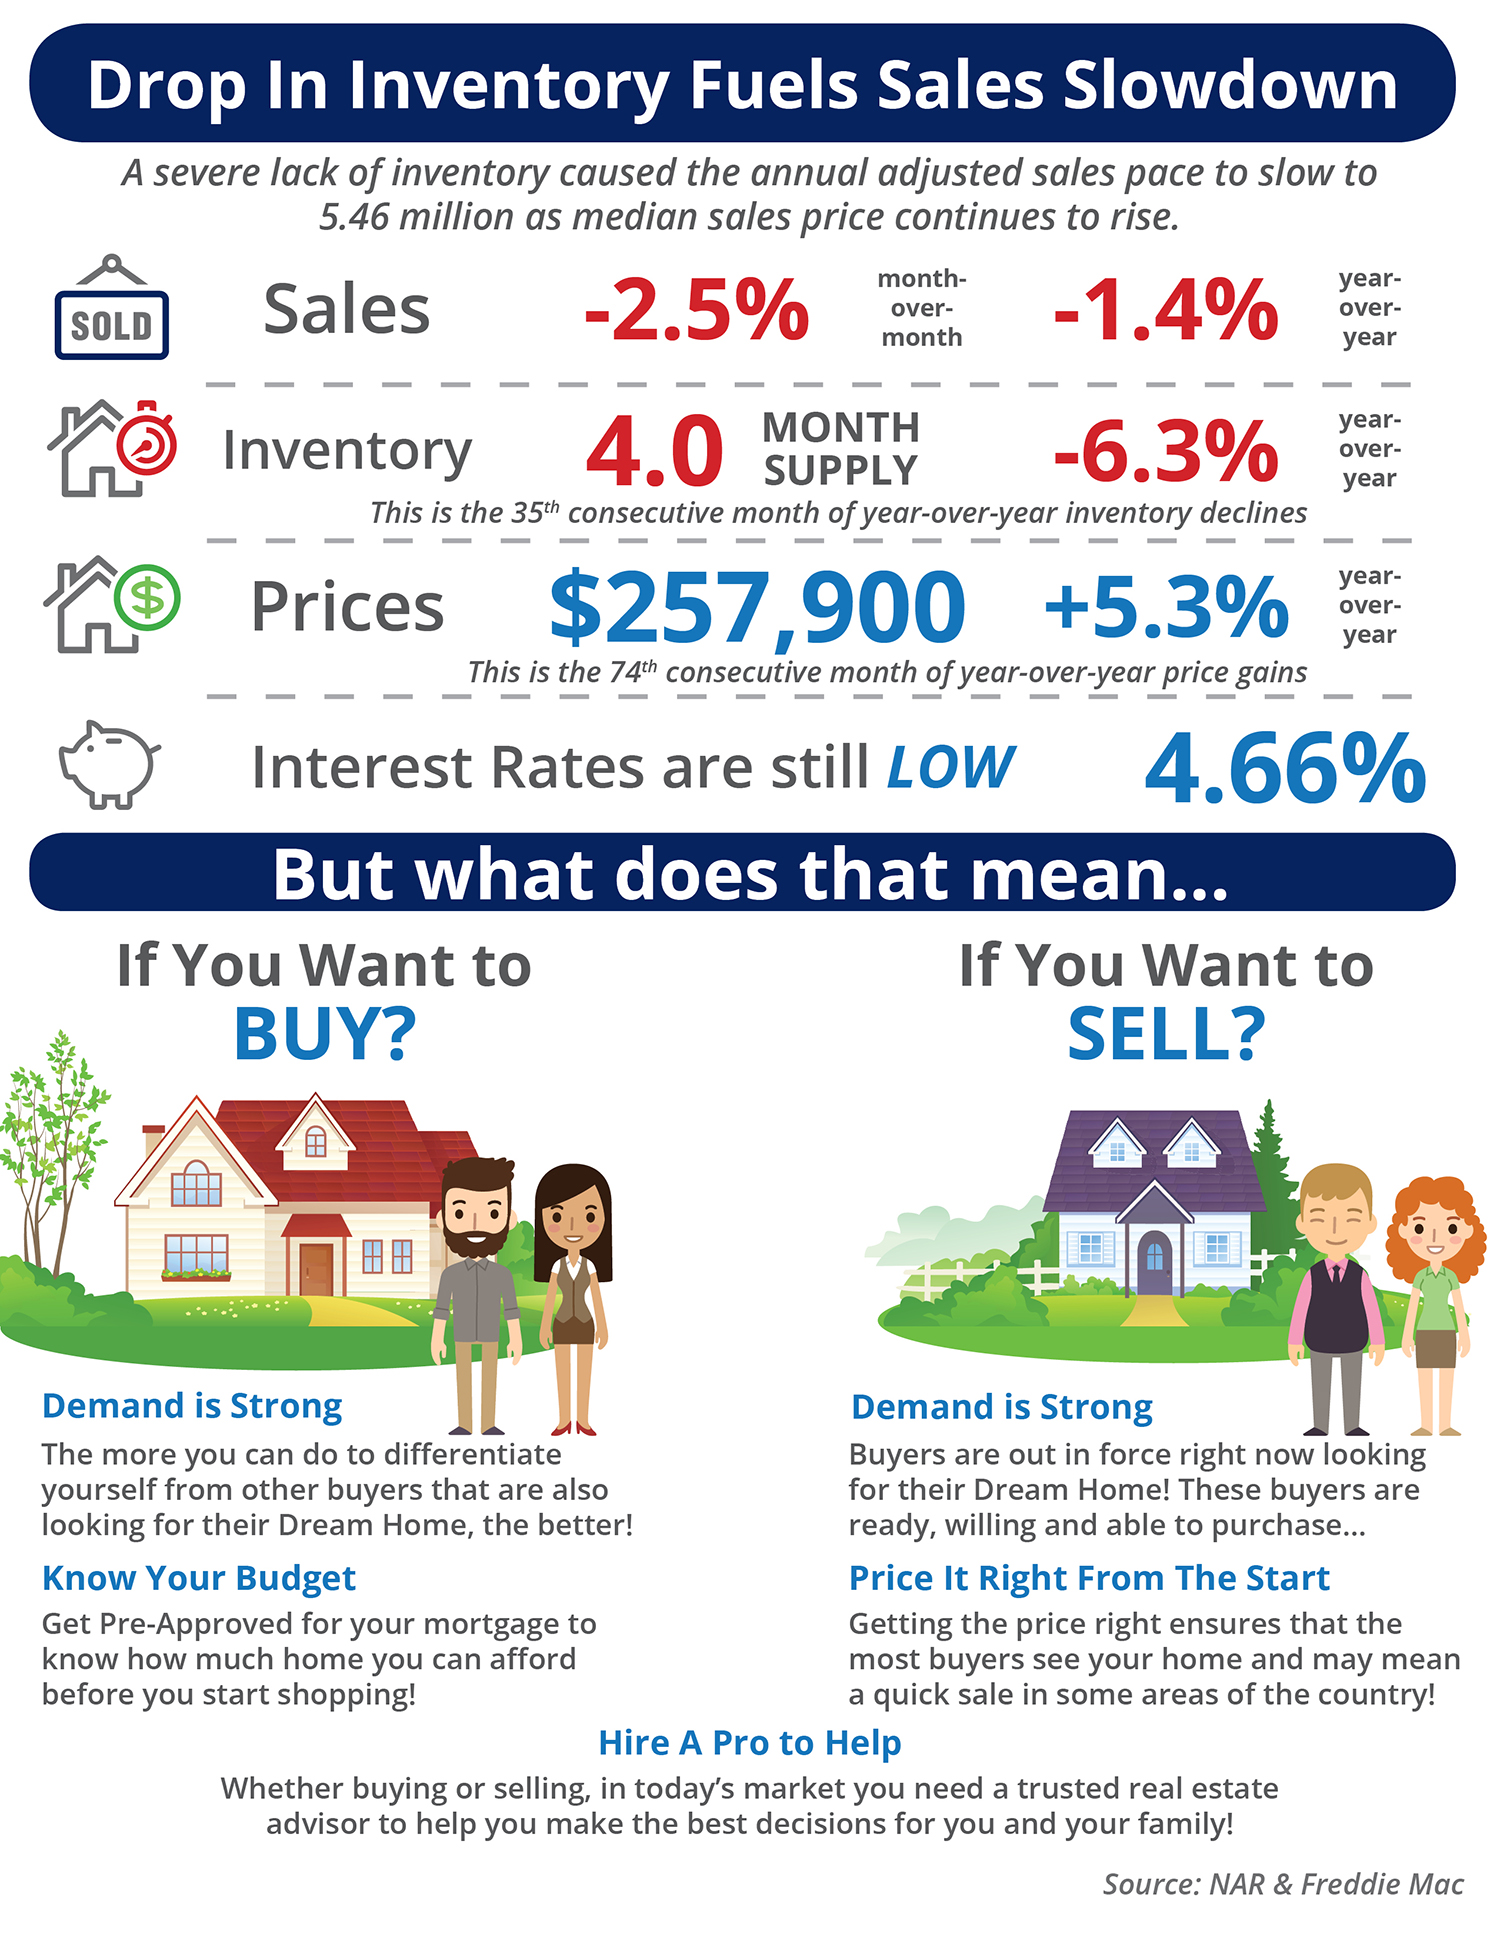 Drop in Inventory Fuels Sales Slowdown [INFOGRAPHIC] | Simplifying The Market